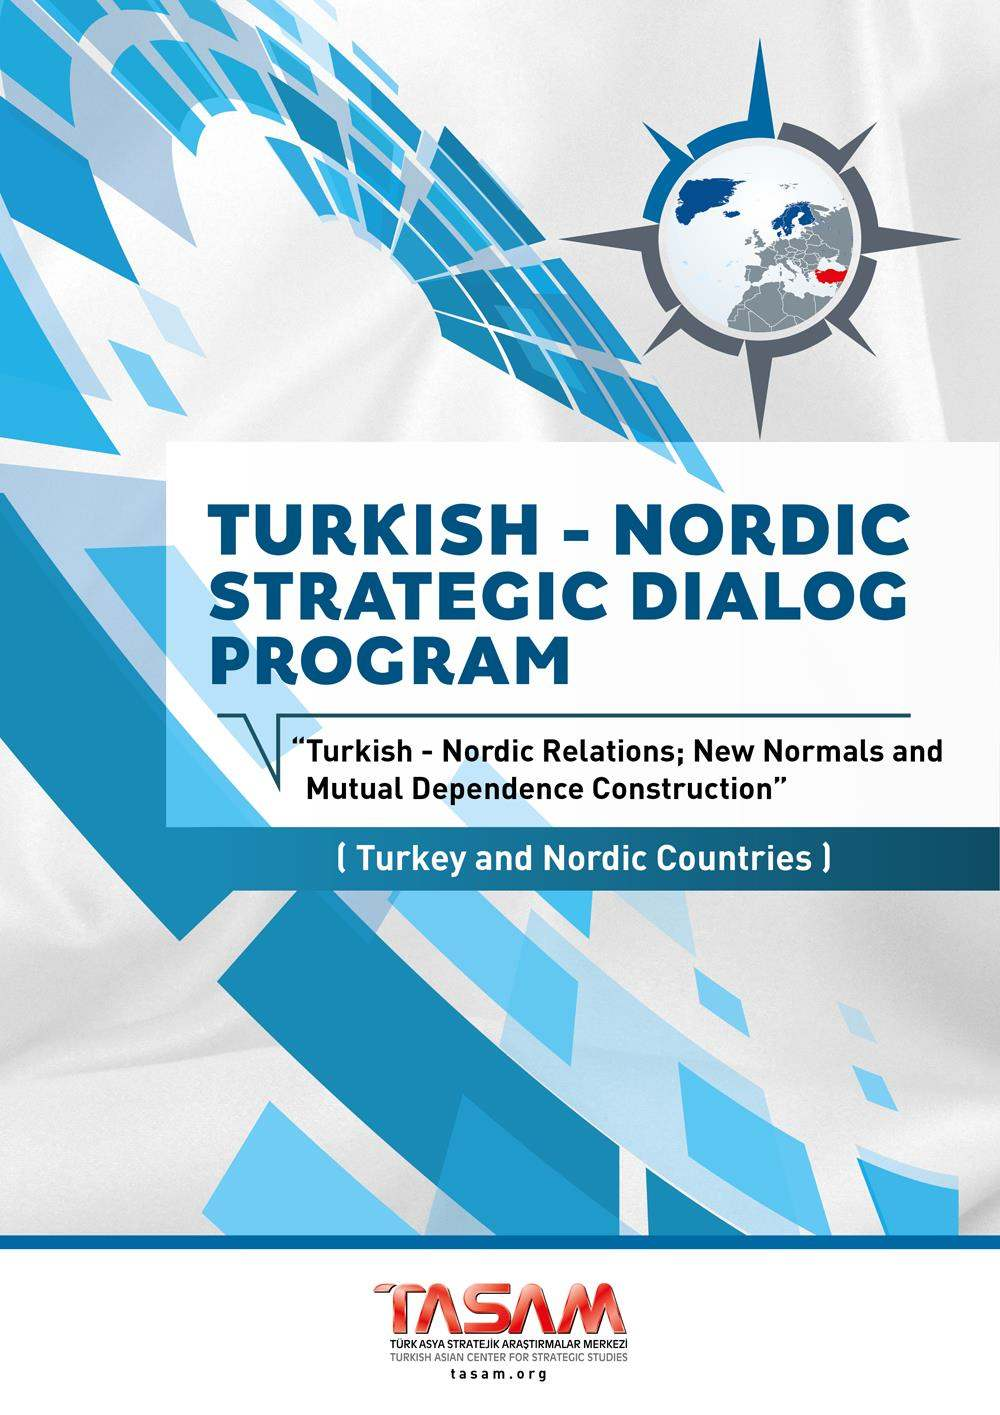 Turkey - Nordik Strategic Dialogue Program